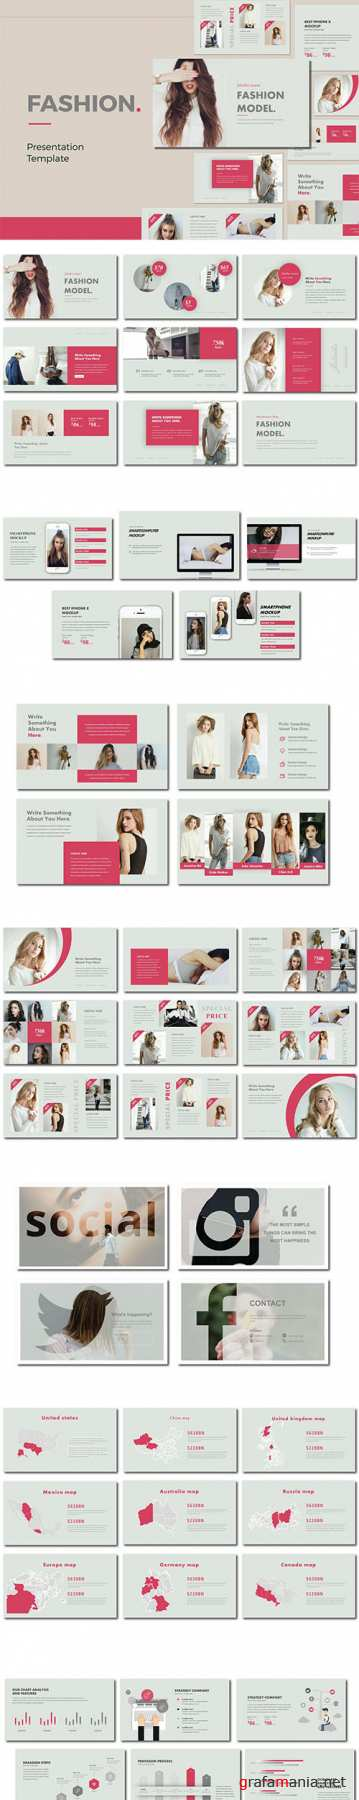 FASHION - Powerpoint and Google Sliders Template